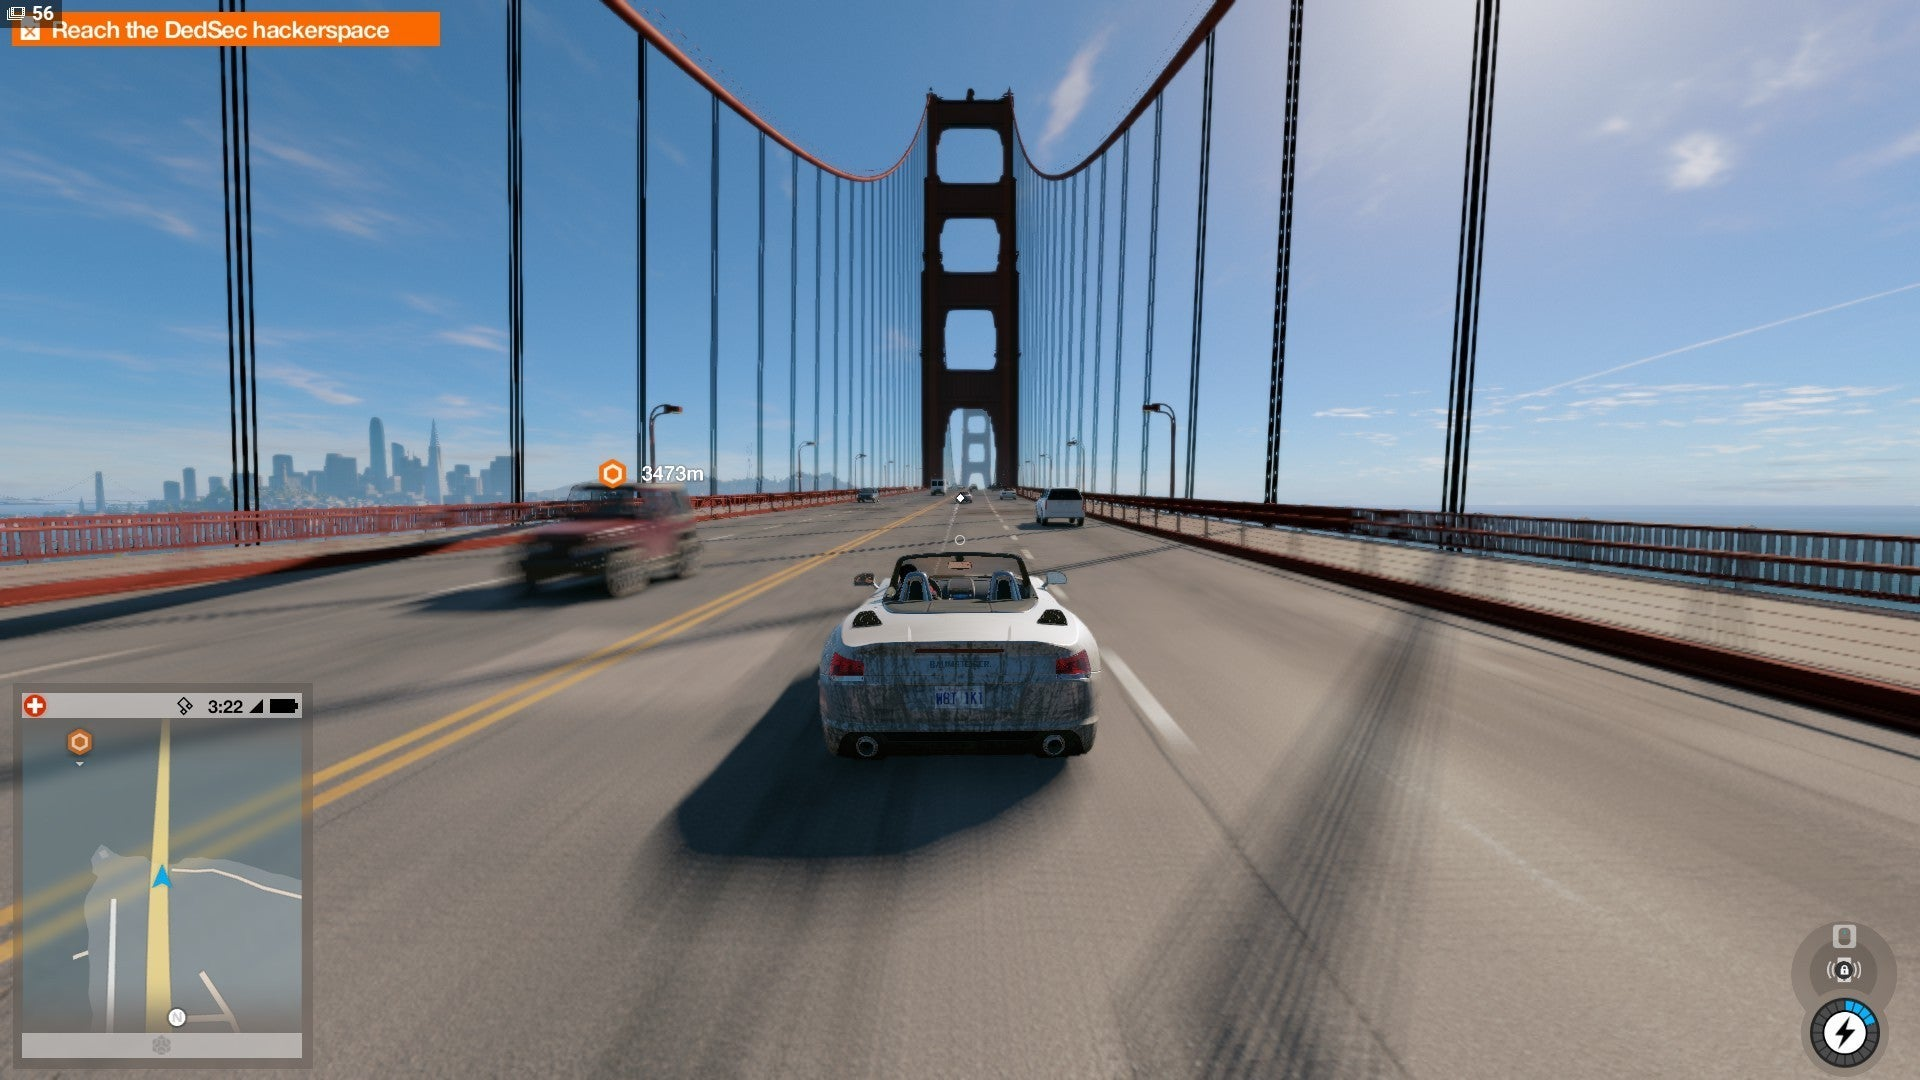 Watch Dogs 2 PC review impressions: A smooth-running, meme